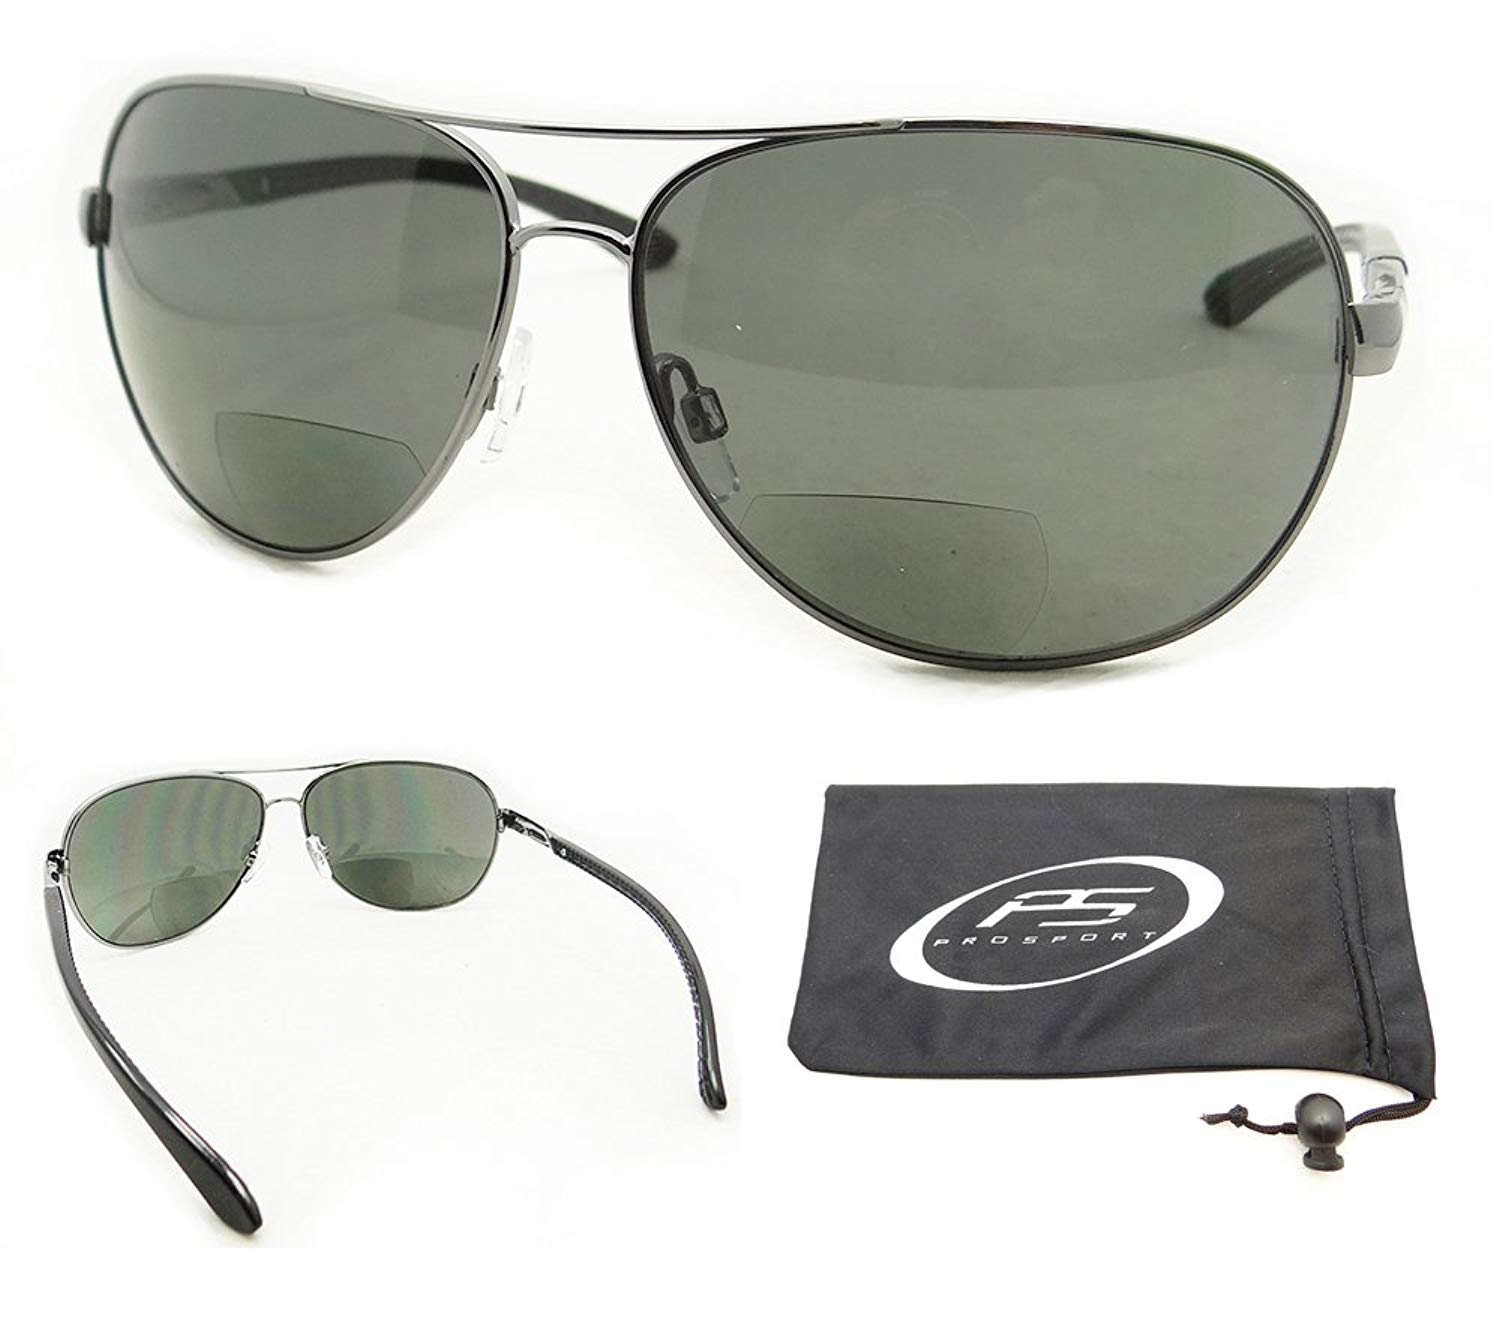 3bde829e95 Get Quotations · Aviator Polarized Bifocal Sunglasses for Men. Aailable in  1.50